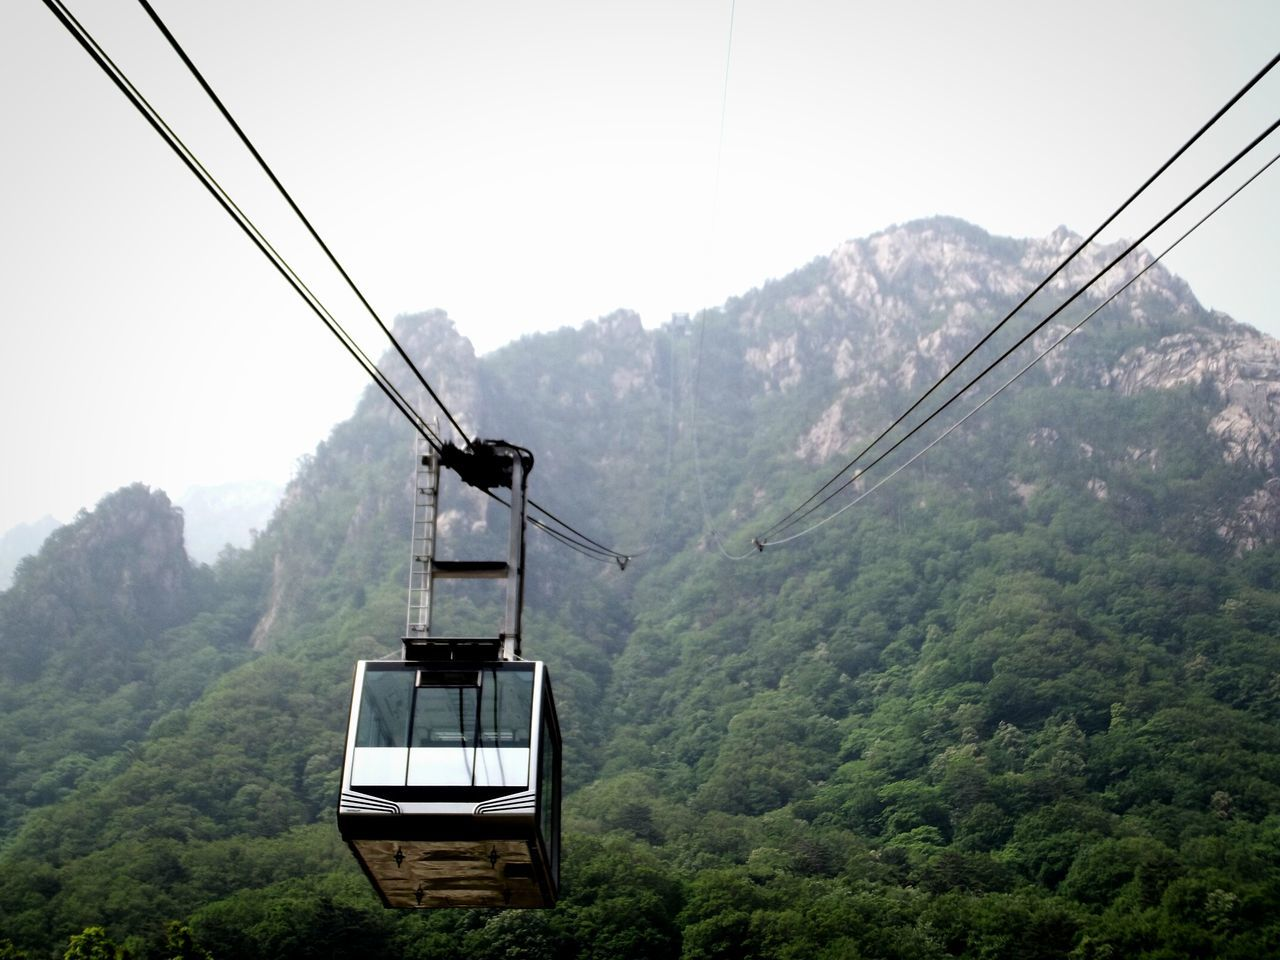 Cable Car Trees Woods Forest Mountain Seorak Mountain Korea South Korea Nature Nature Photography Outdoor Photography Outdoors Green Foggy Landscape Foggy Seoraksannationalpark Mount Sorak, Korea Mount Sorak Seoraksan Clear Sky